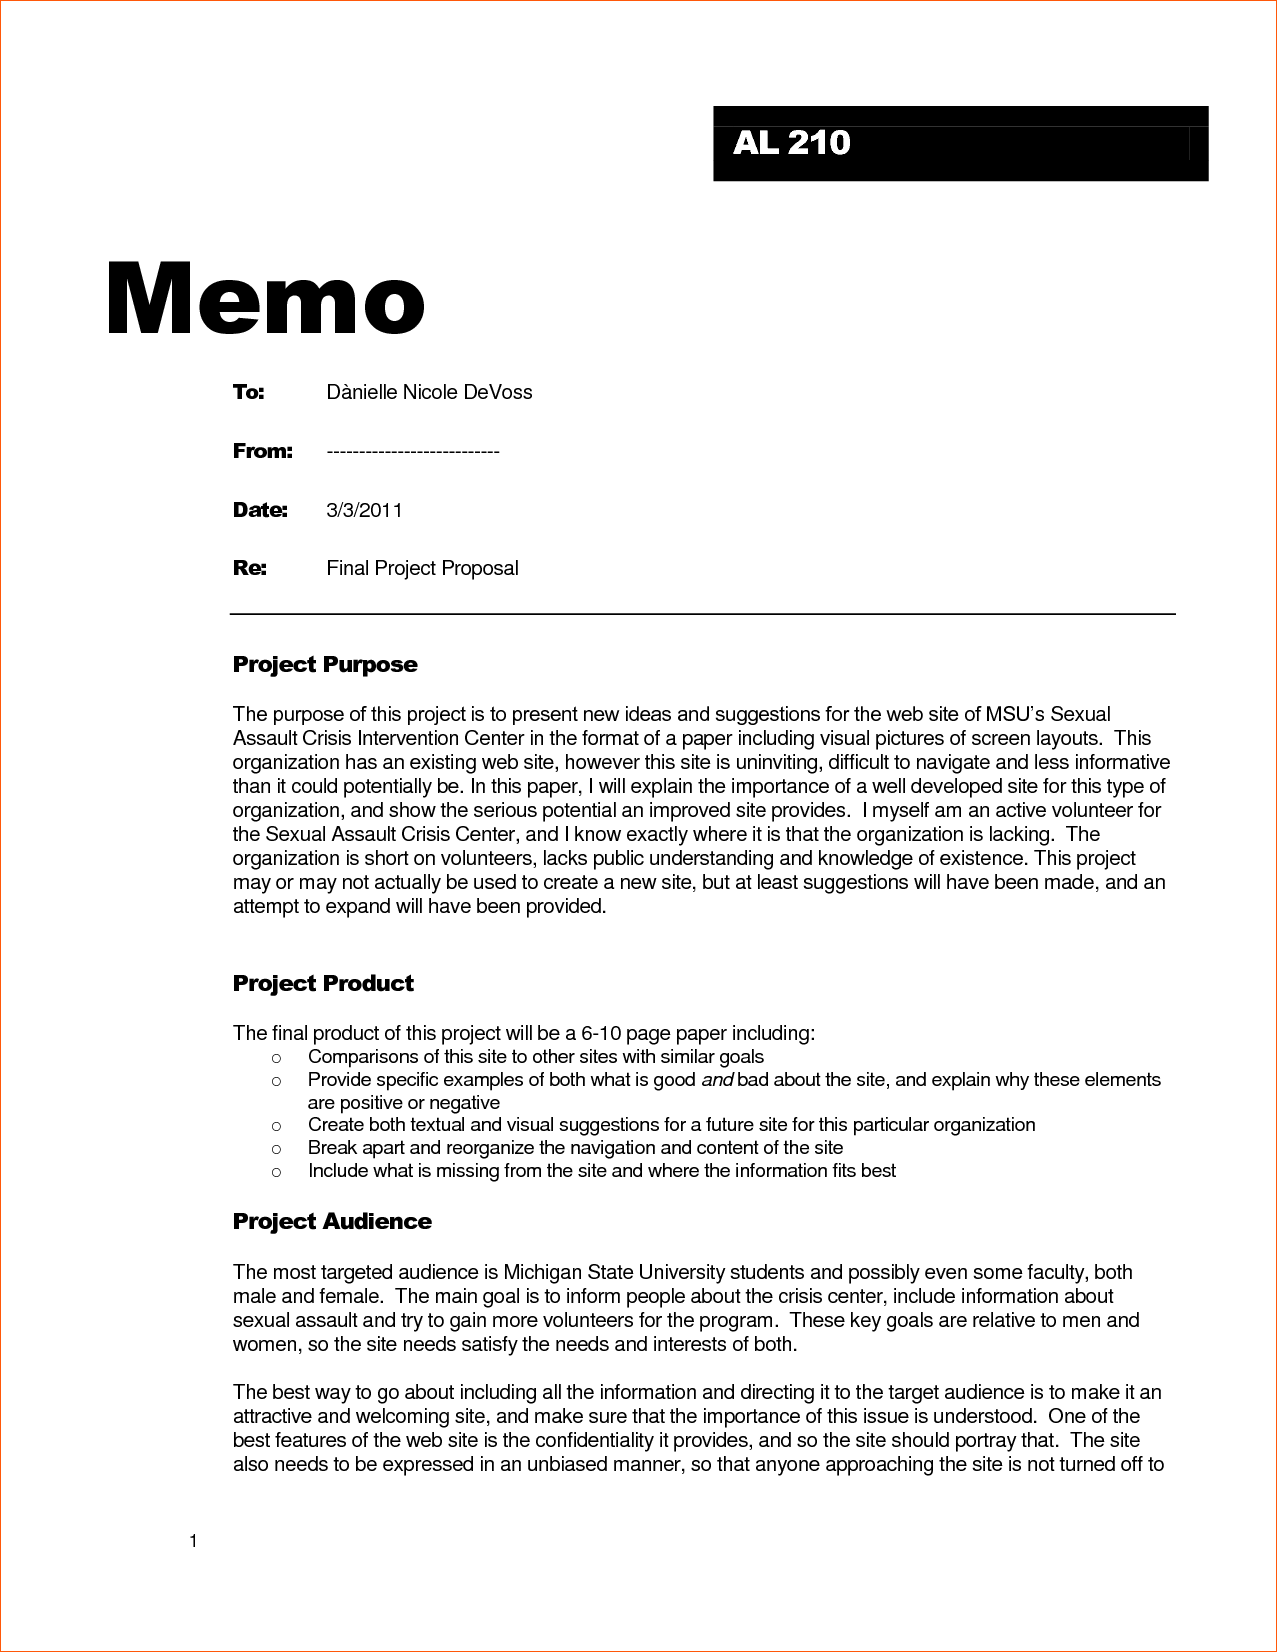 Template Introduction Letter Letterhead Medical Memo